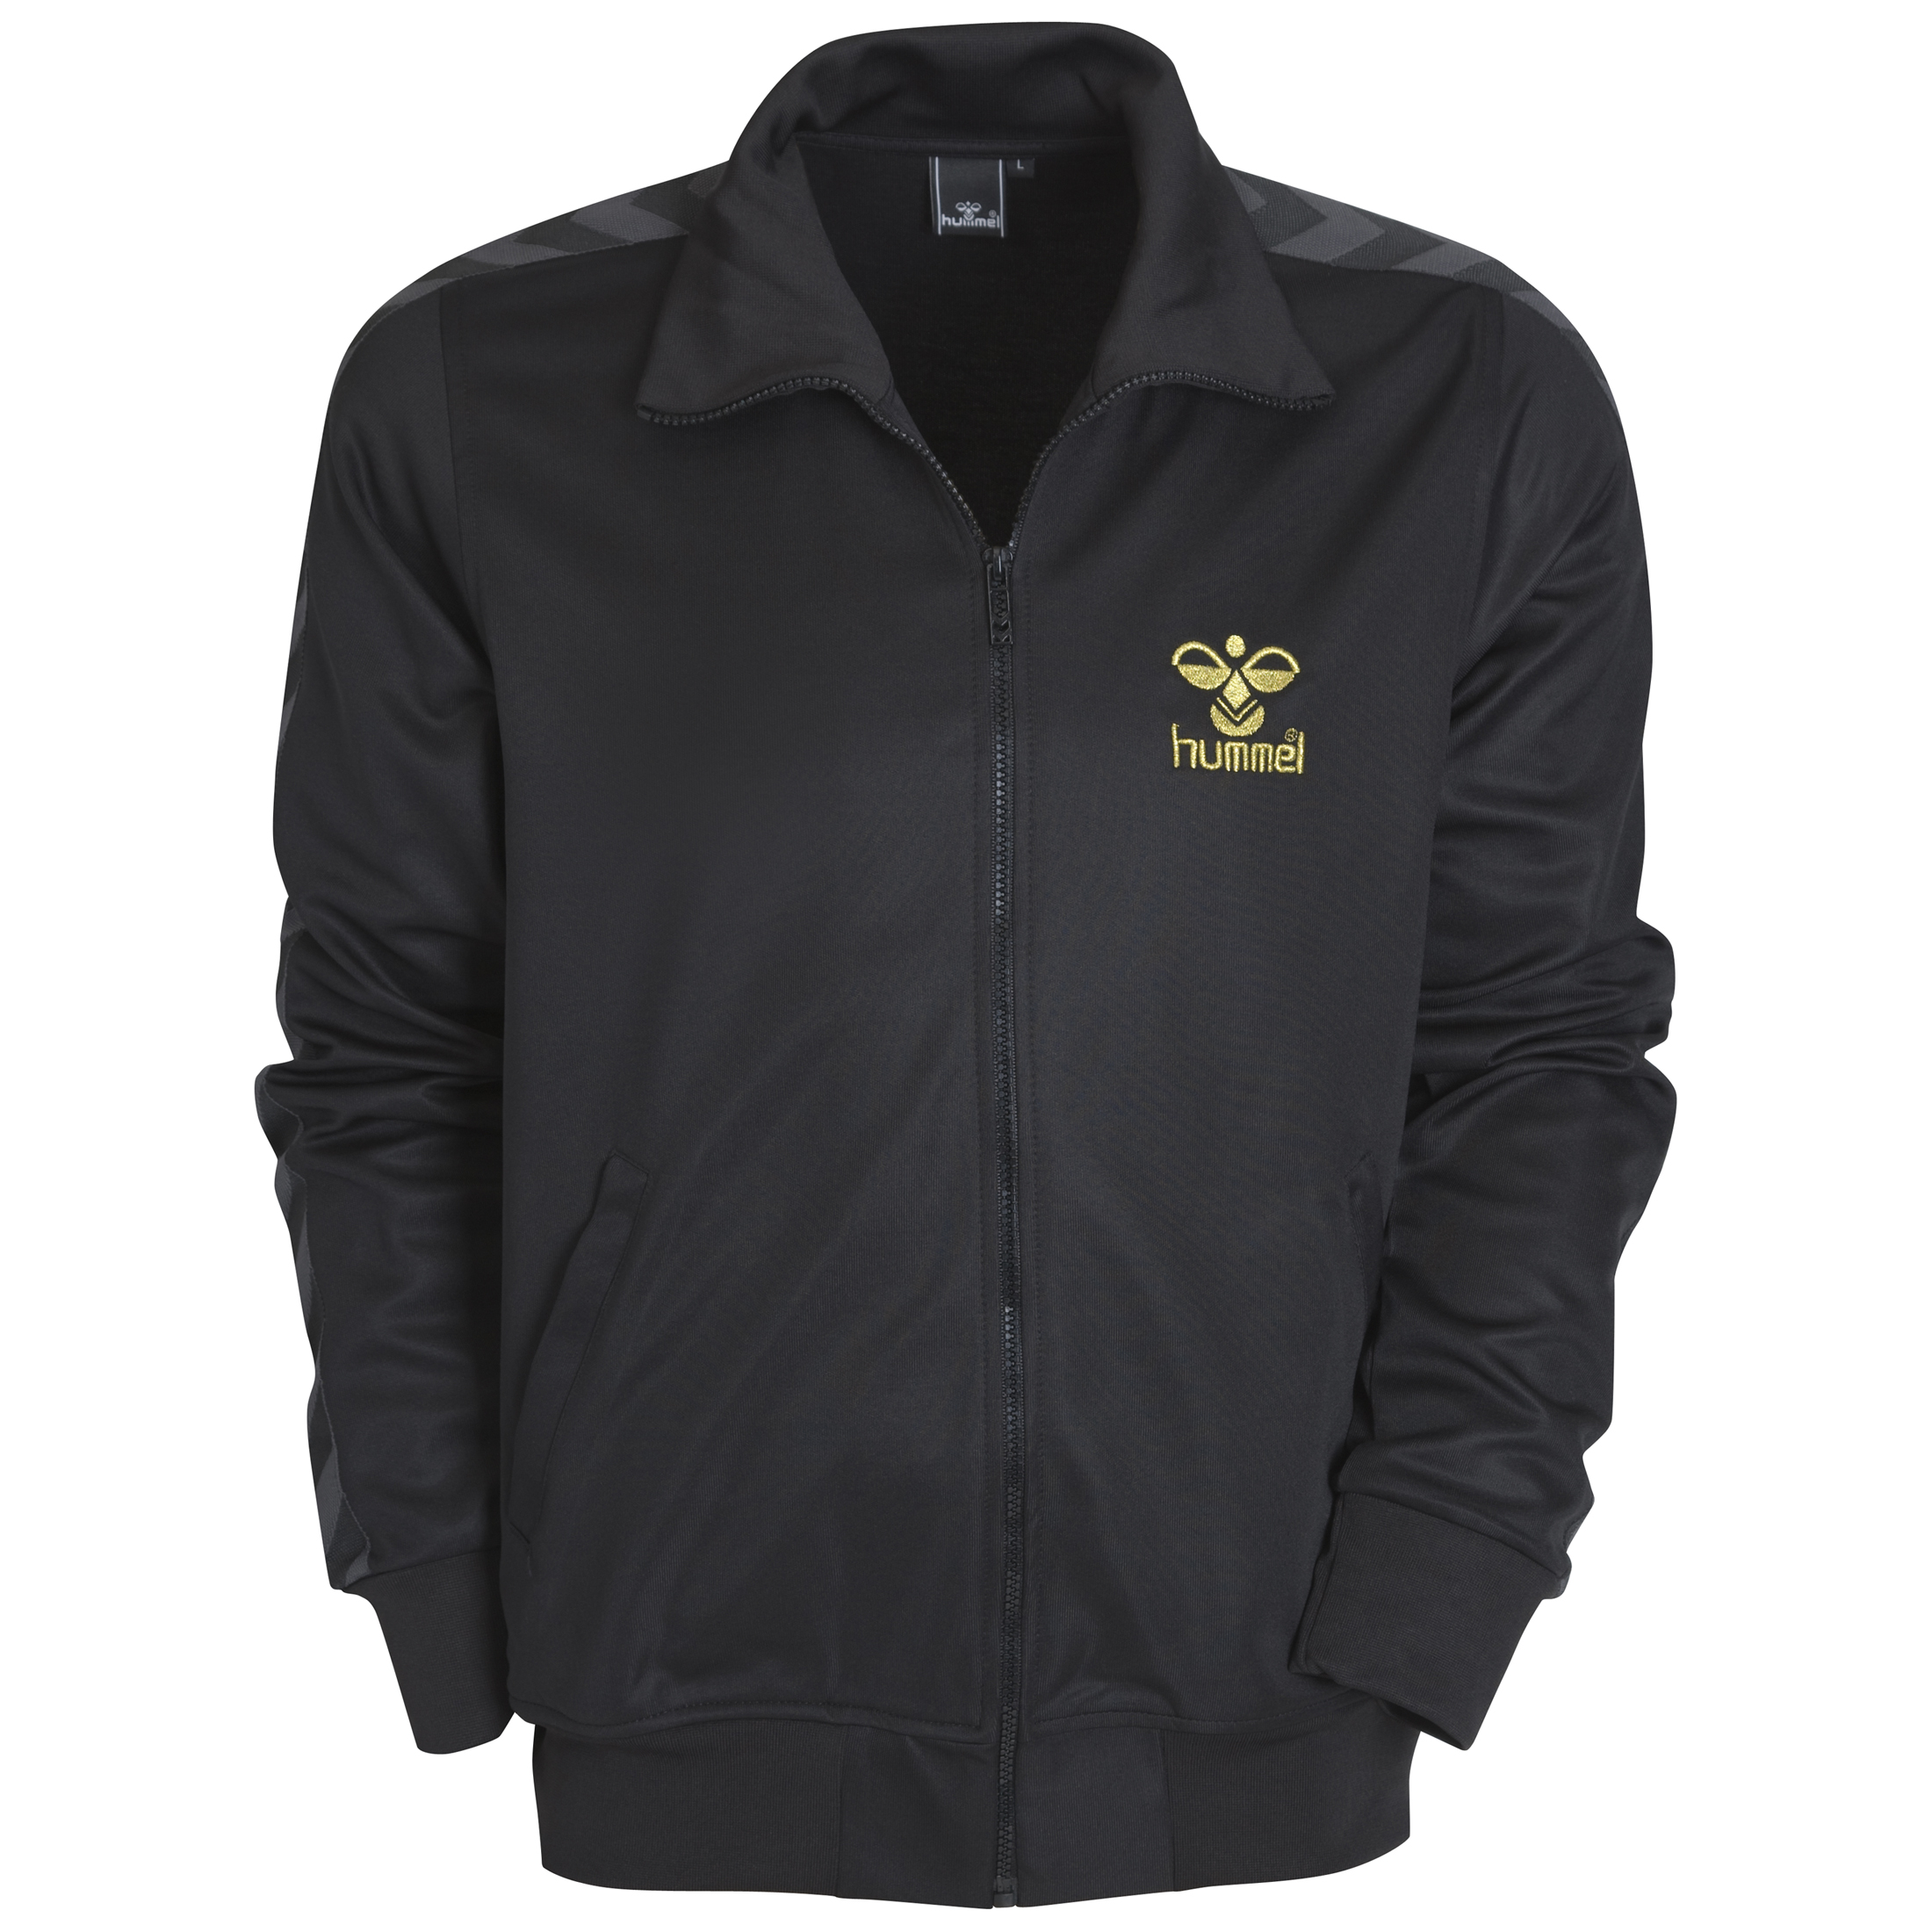 Hummel Antlantic Zip Jacket - Black/Gold